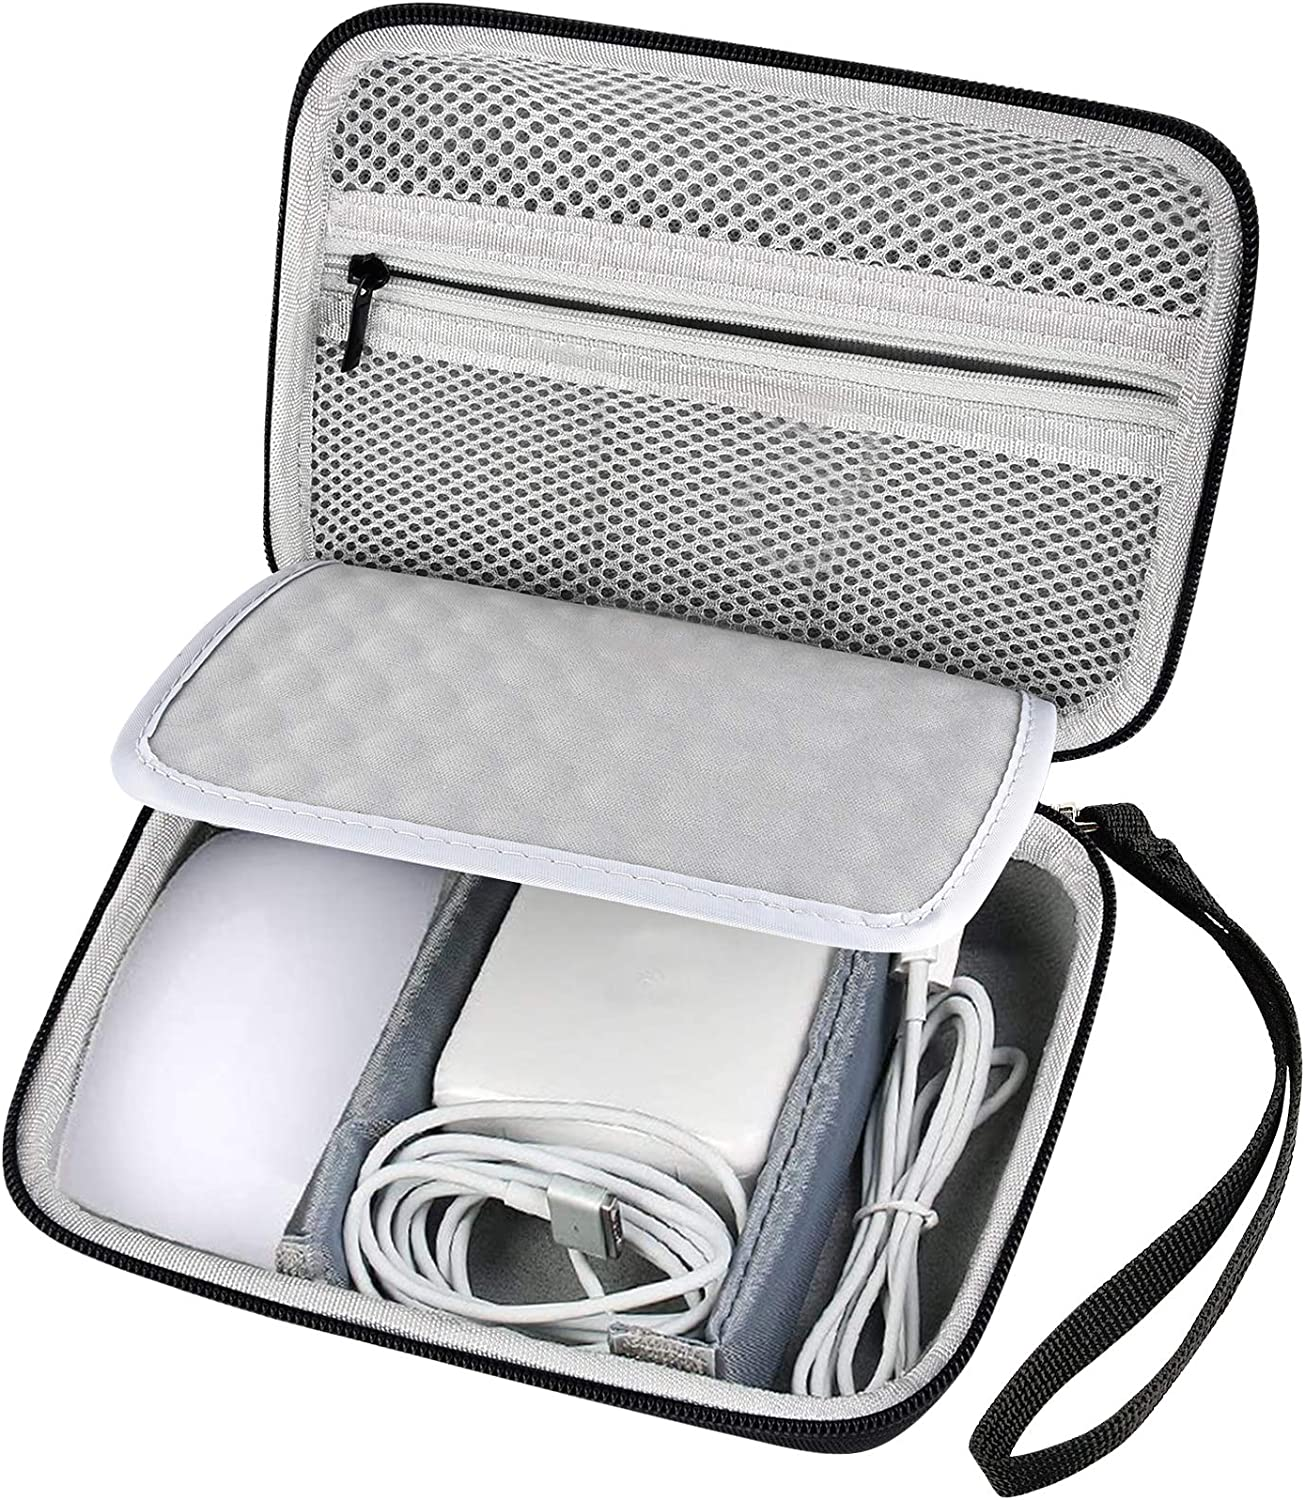 Hard Carrying Case for Apple Pencil, Magic Mouse 2 and 1, Magsafe Power Adapter, BeatsX Earphone, Magsafe Power Adapter, BeatsX,Beats Monster by Dre,Magnetic Charging Cable - Black (Bag Only)